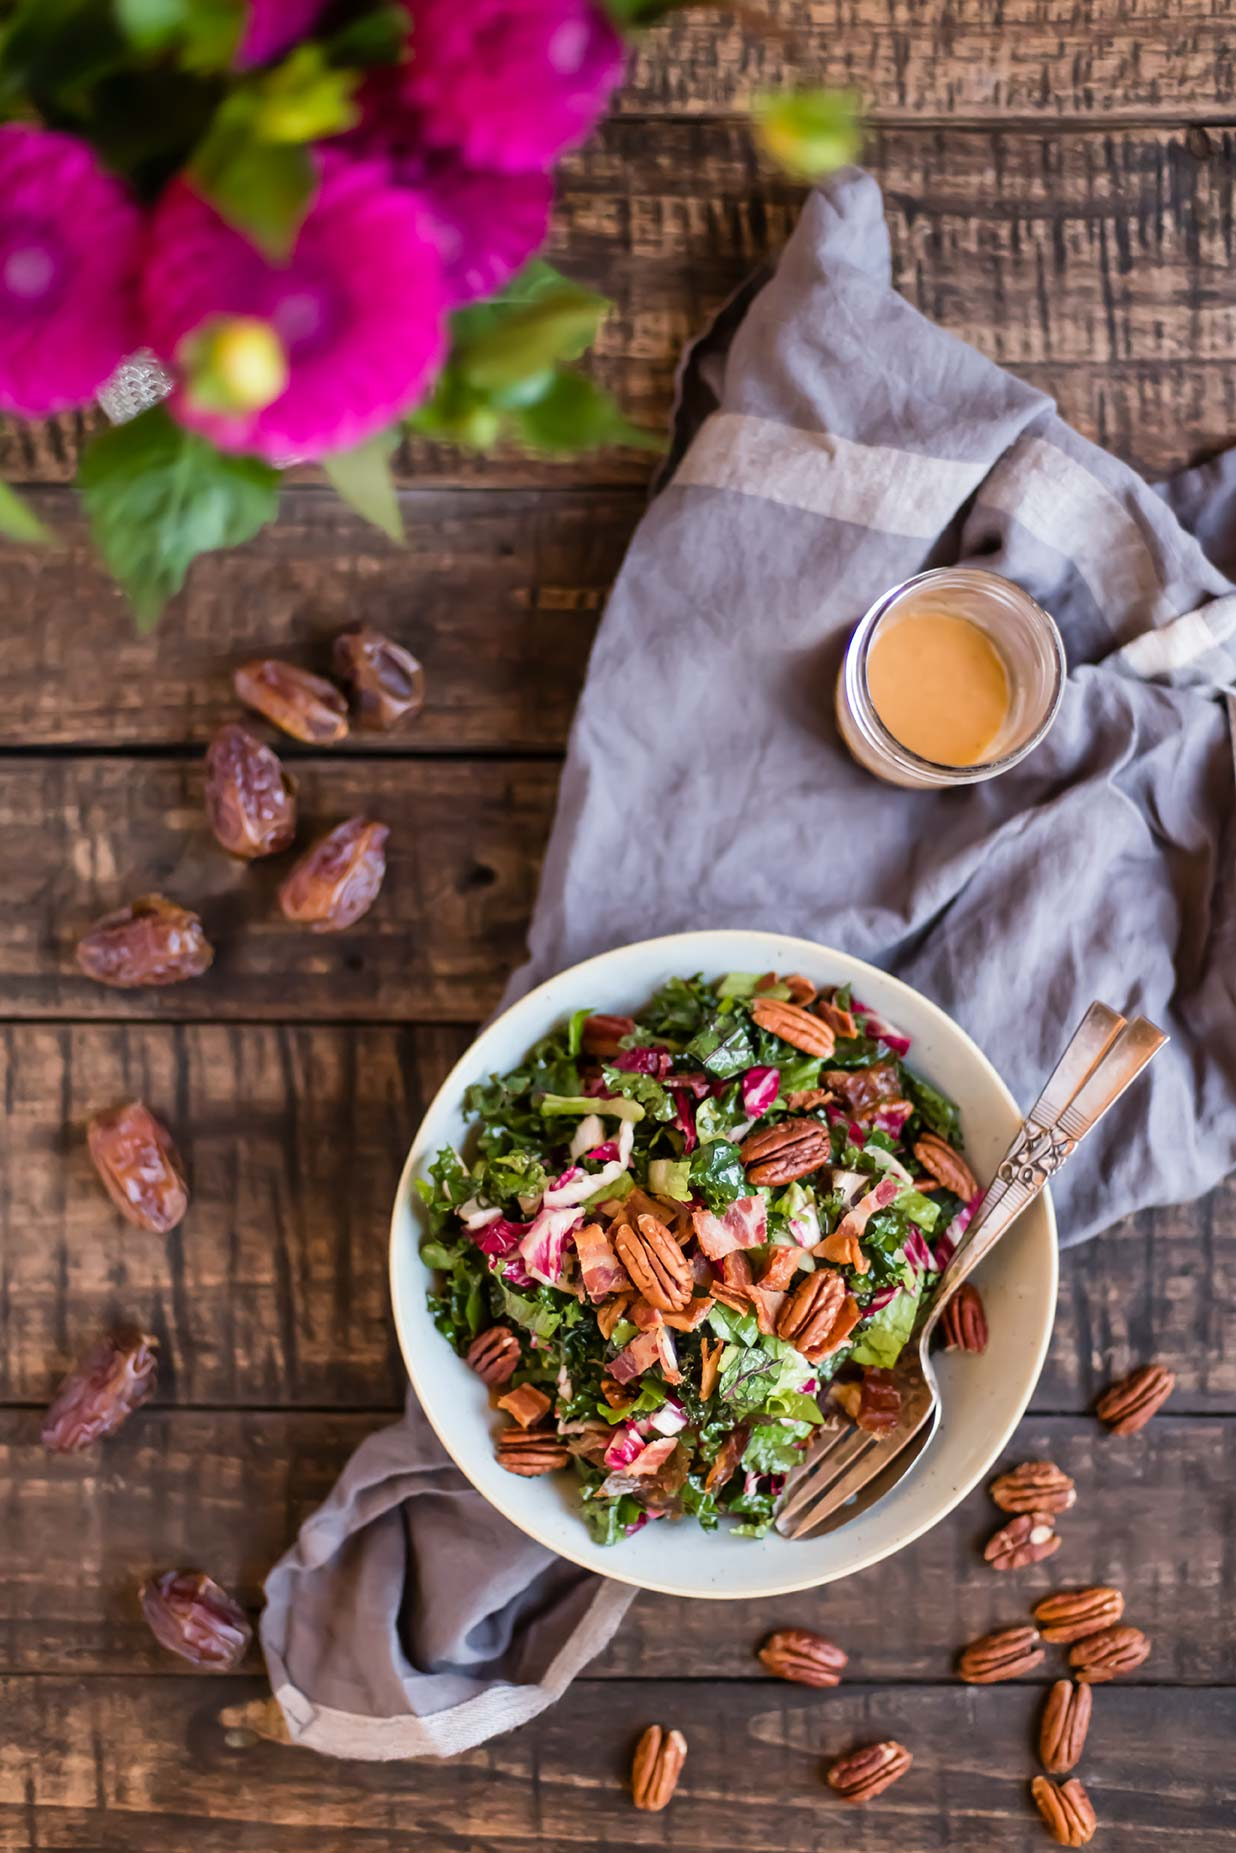 Chopped Kale Salad with Bacon, Dates & Kale